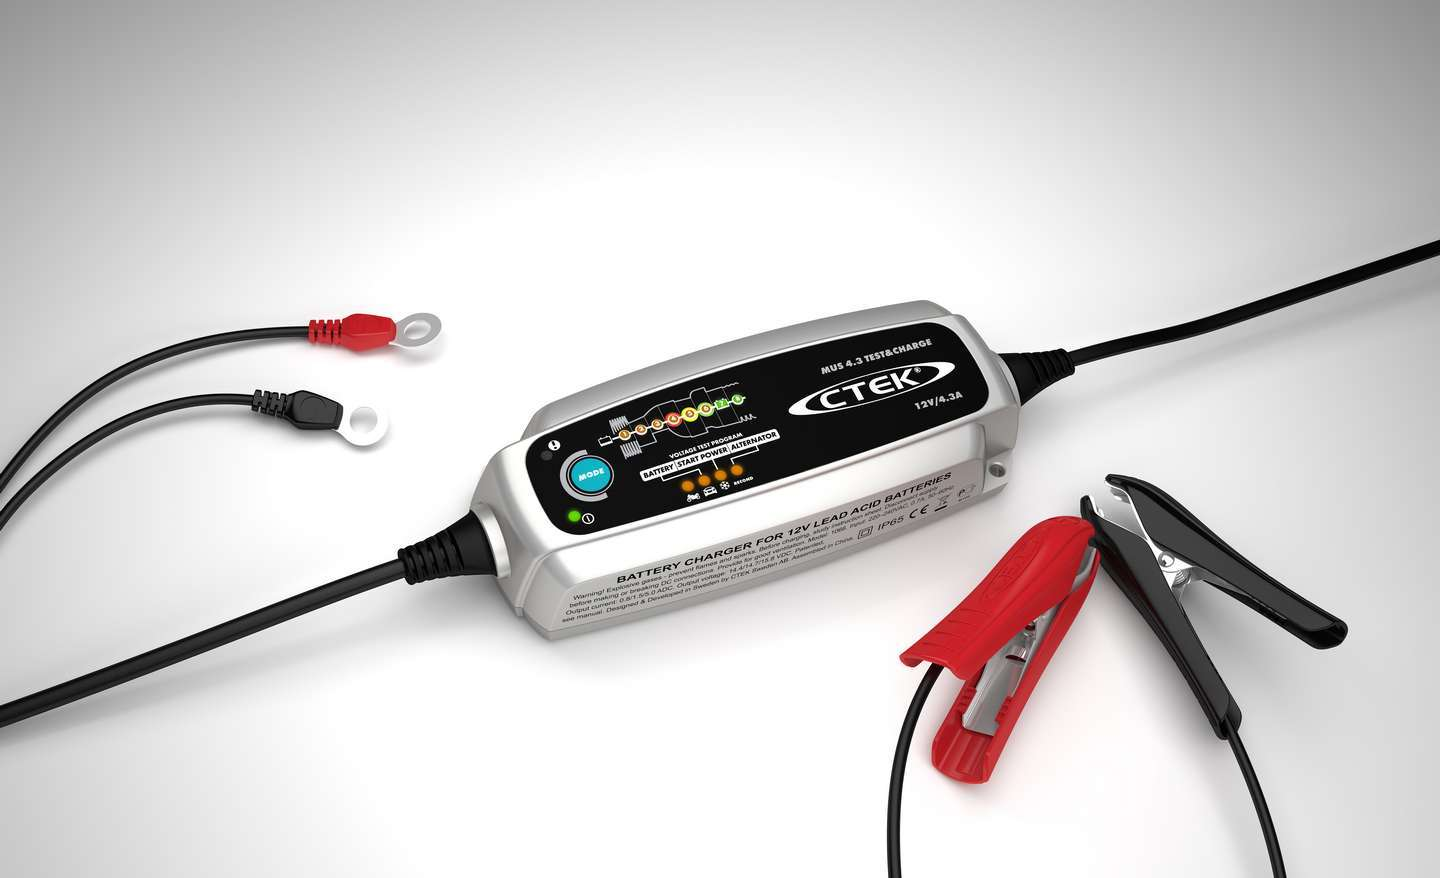 Battery Chager MUS 4.3 Test & Charge 12v